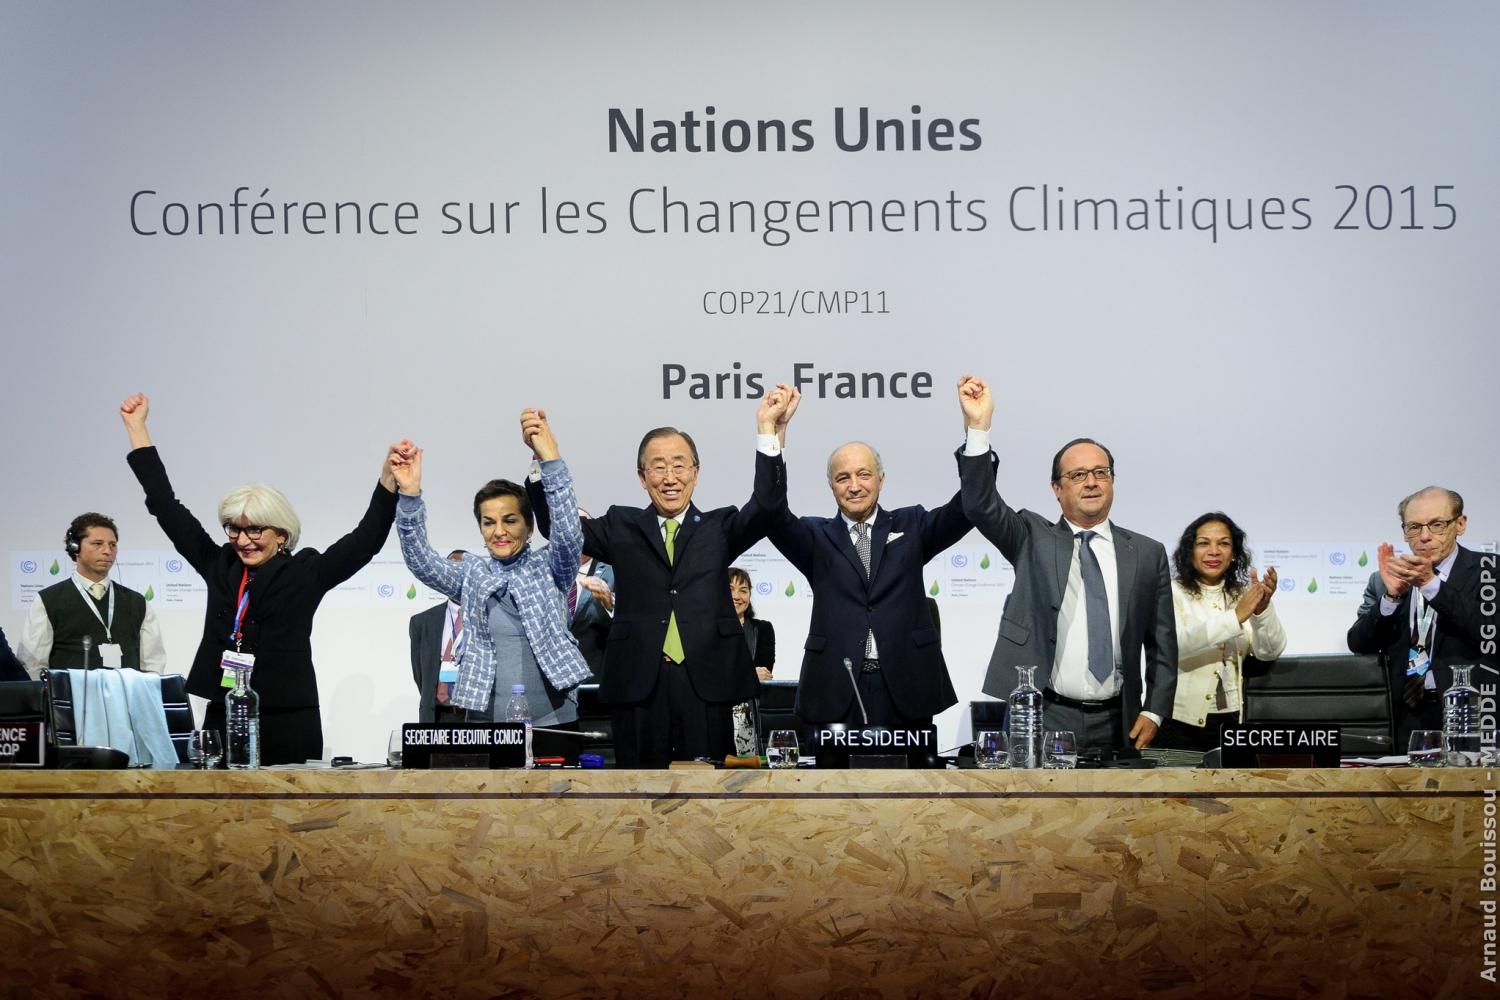 COP21 Paris agreement adopted